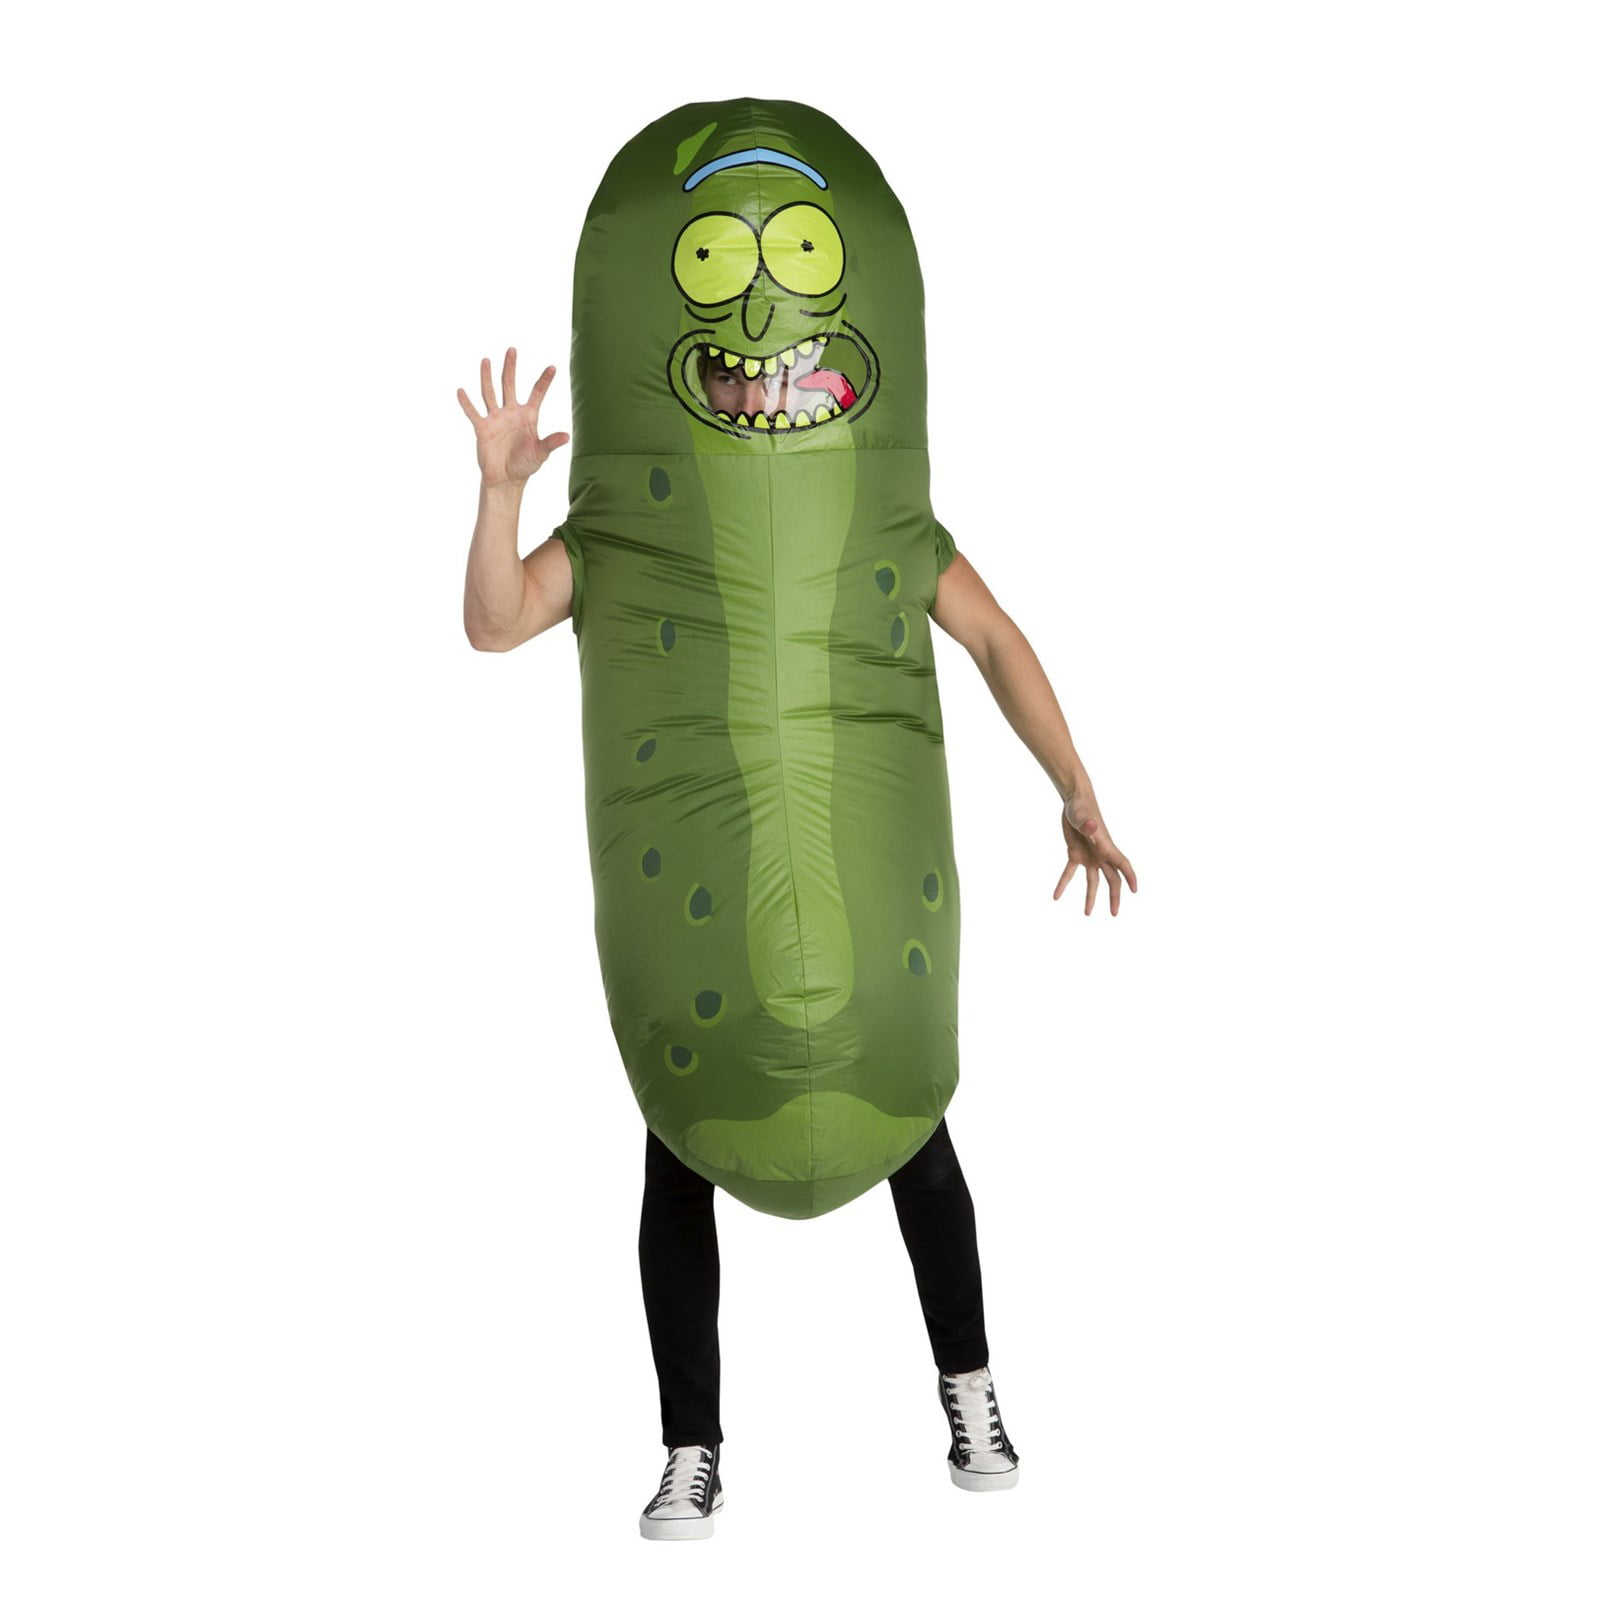 Rick And Morty Foam Pickle Rick Funny Tv Show Halloween Costume